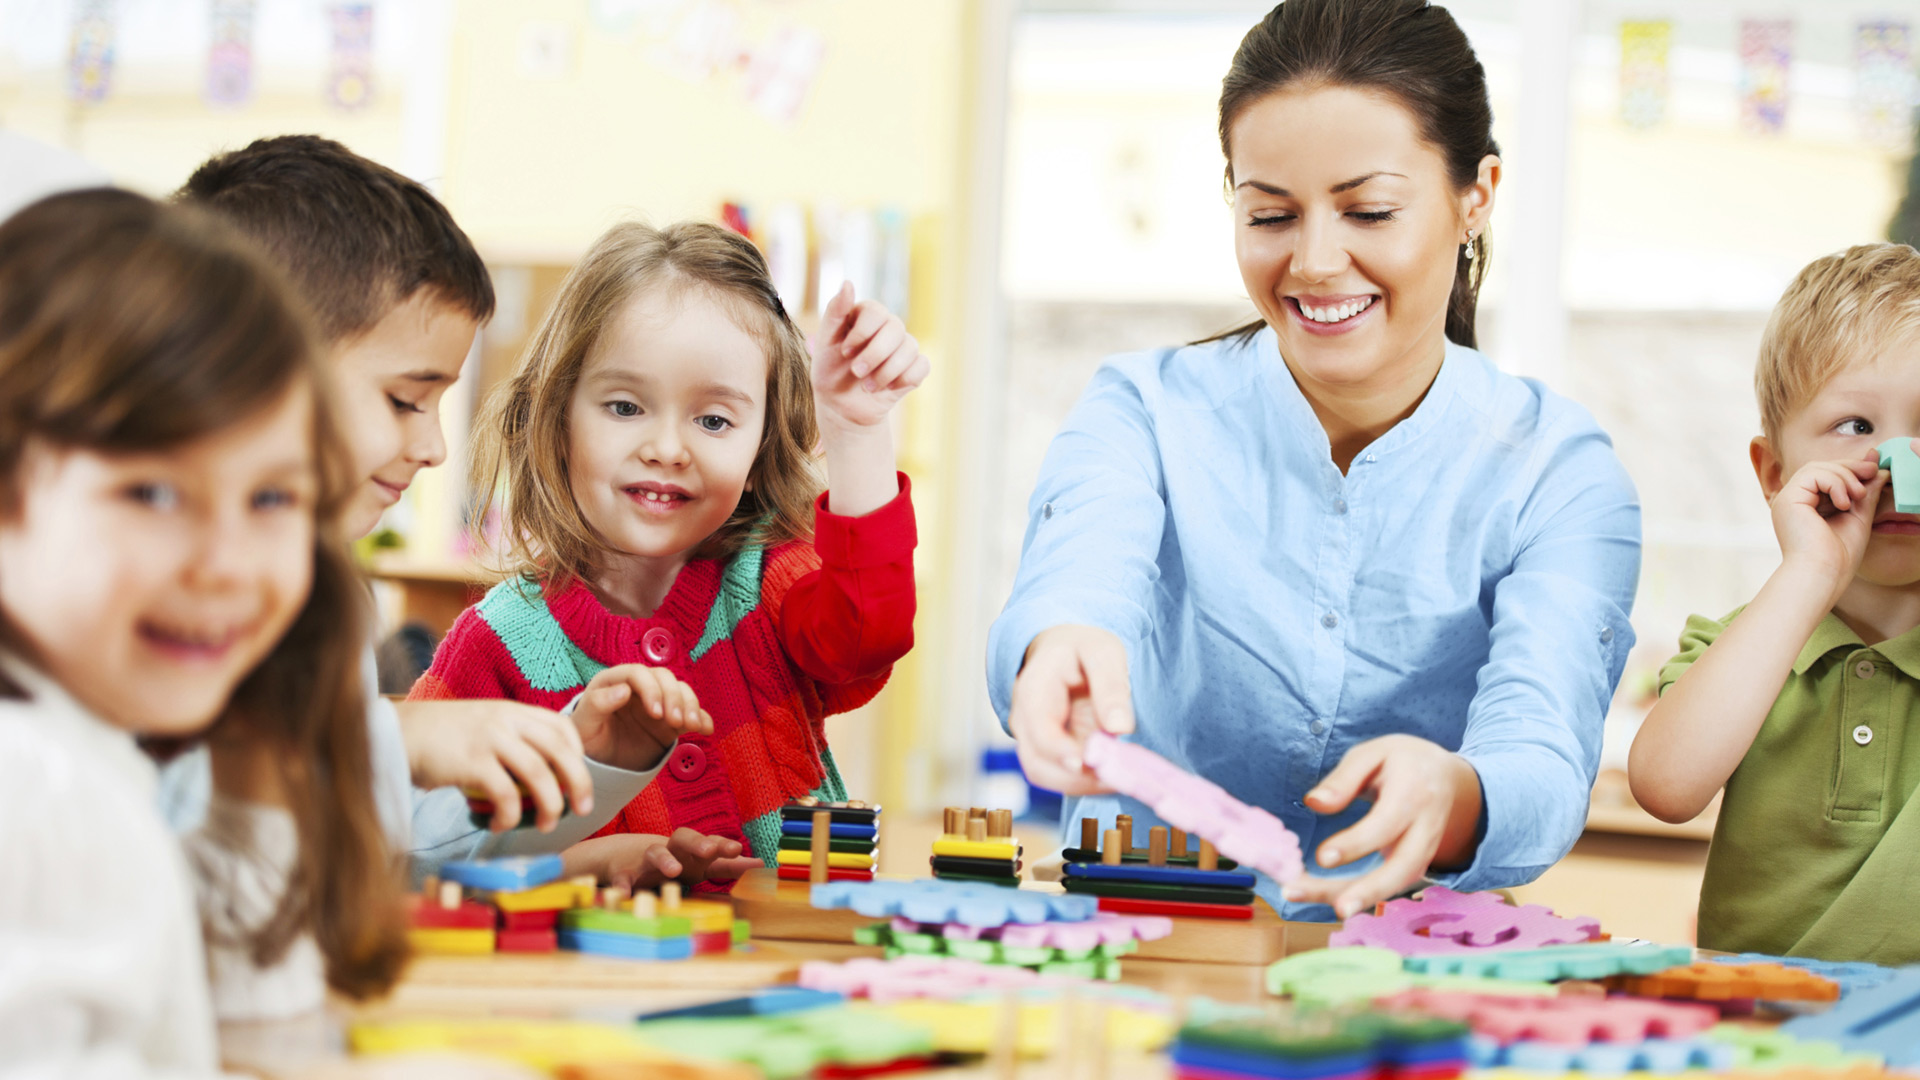 Day Care and Play School Business for Sale in Pune